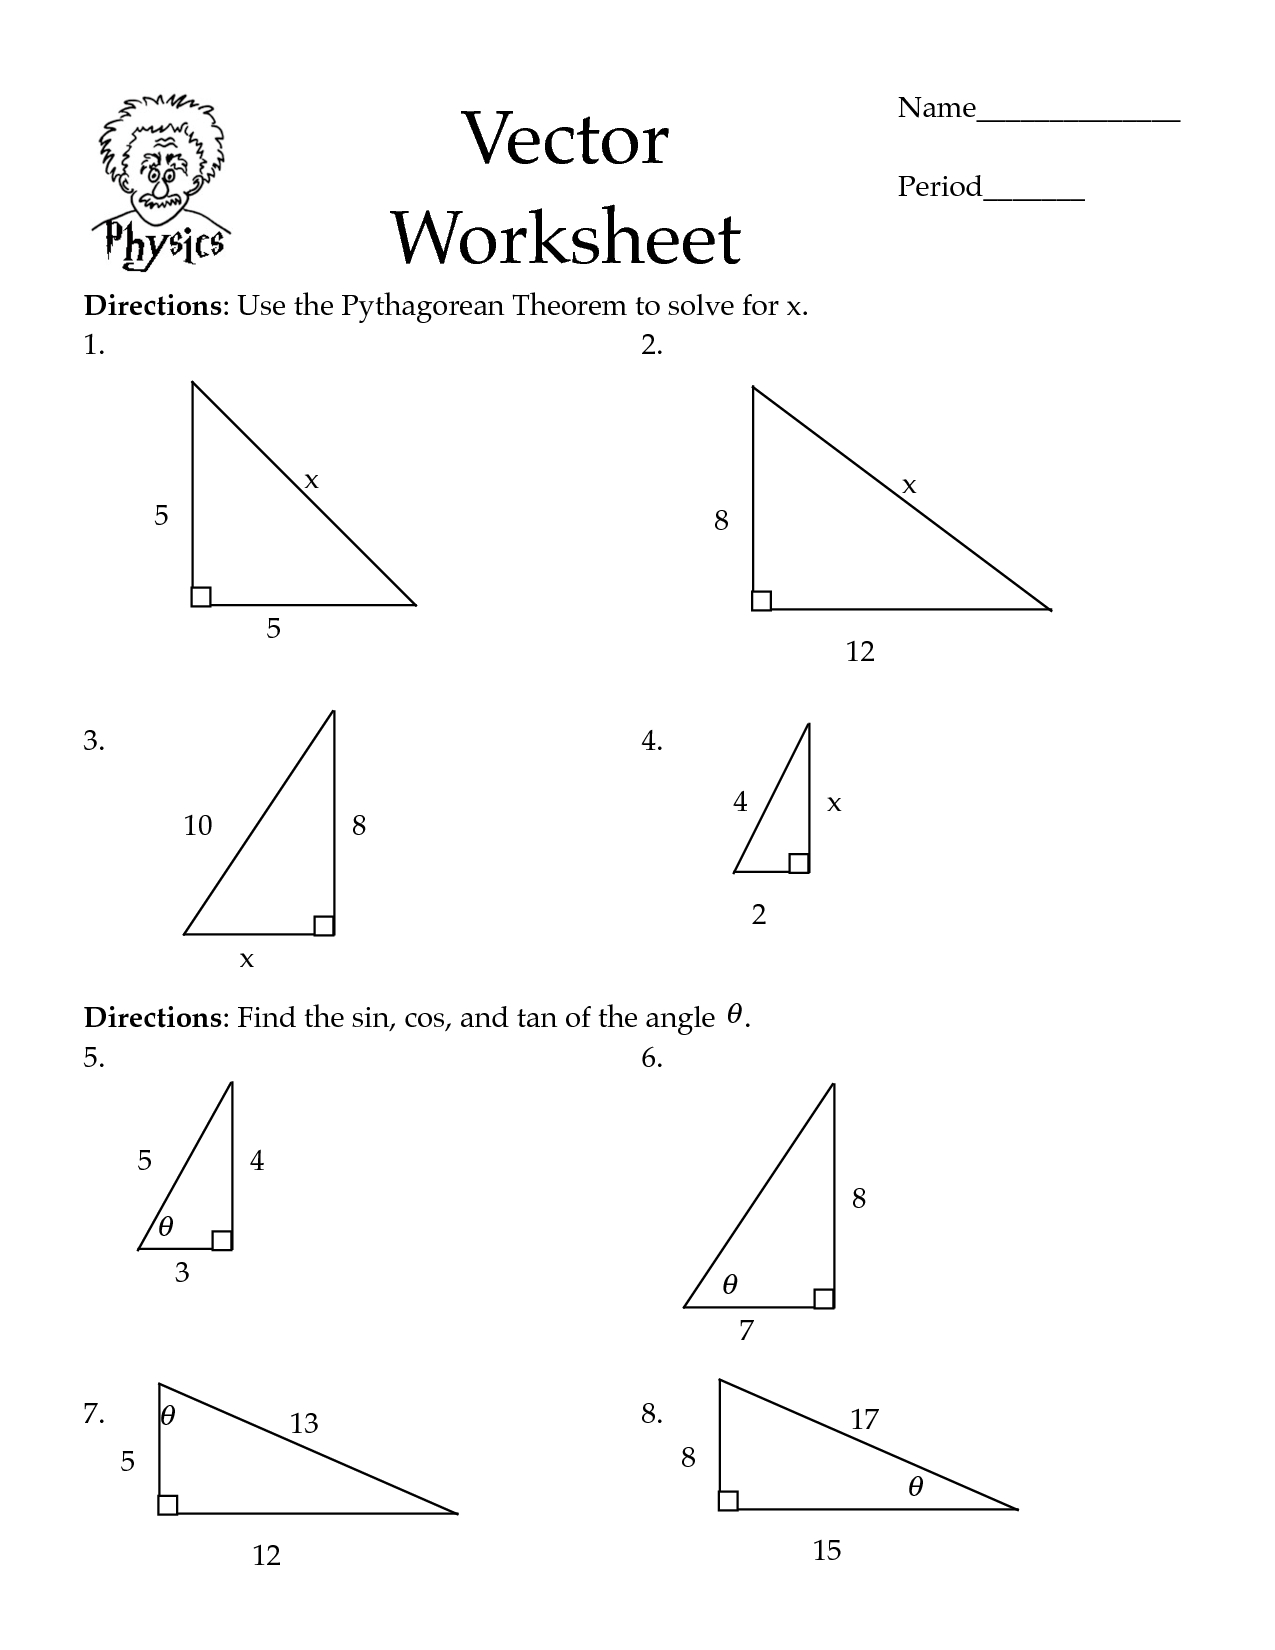 Pythagorean Theorem Worksheets | Cos Law Worksheet - Pdf | Math - Free Printable Pythagorean Theorem Worksheets